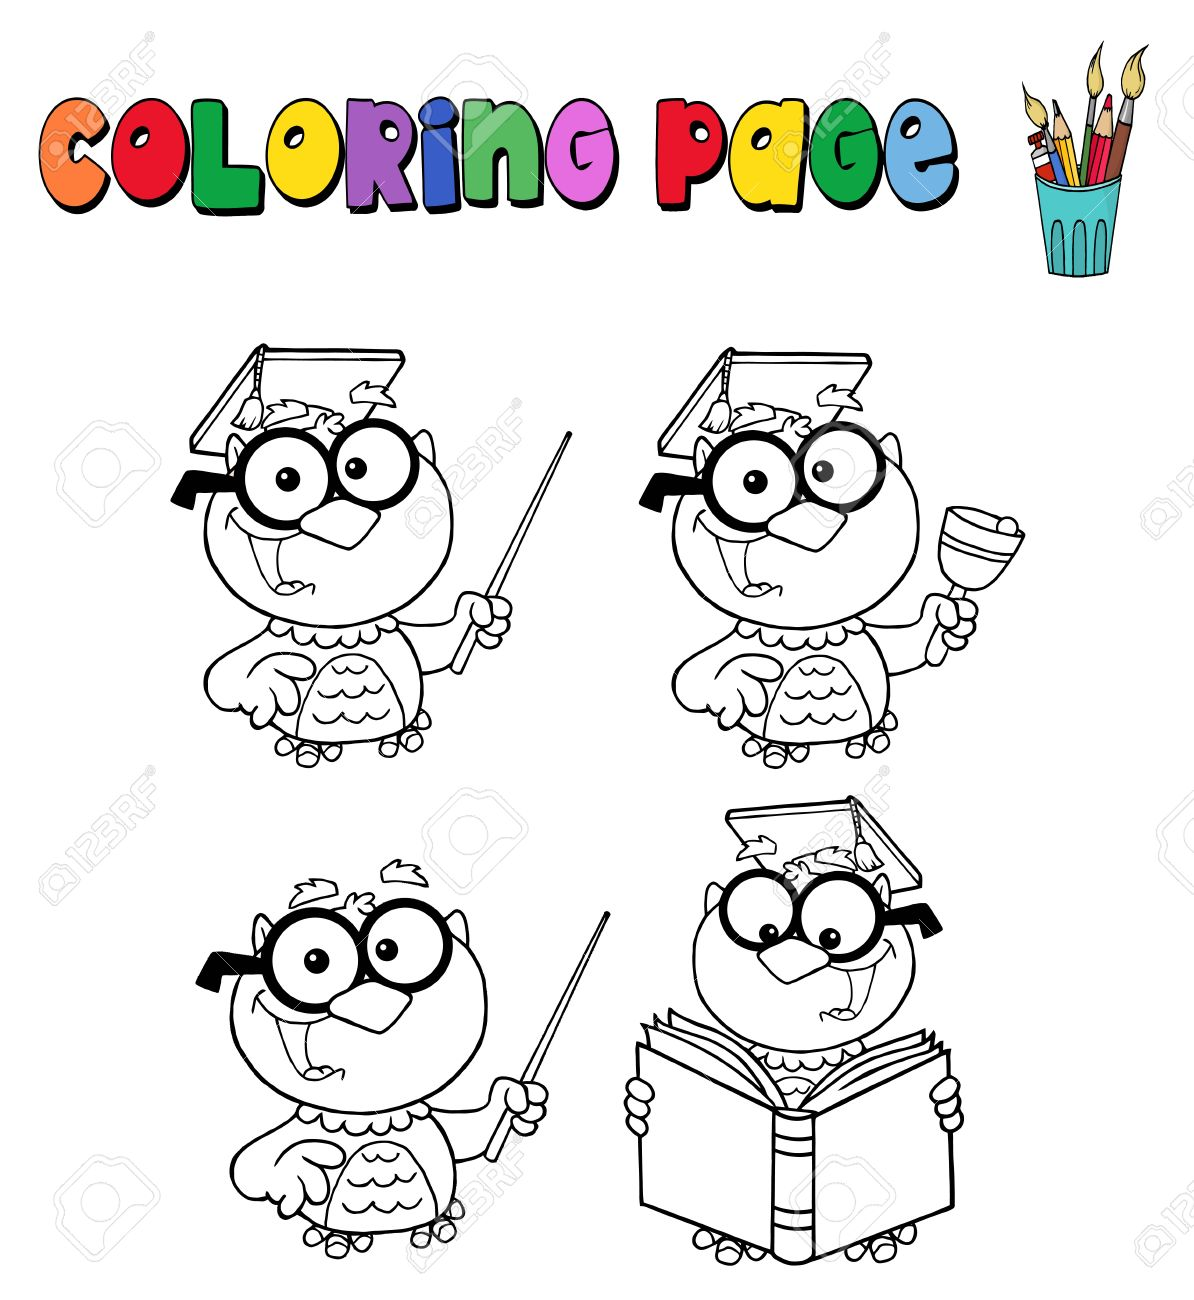 coloring page with owl teacher royalty free cliparts vectors and